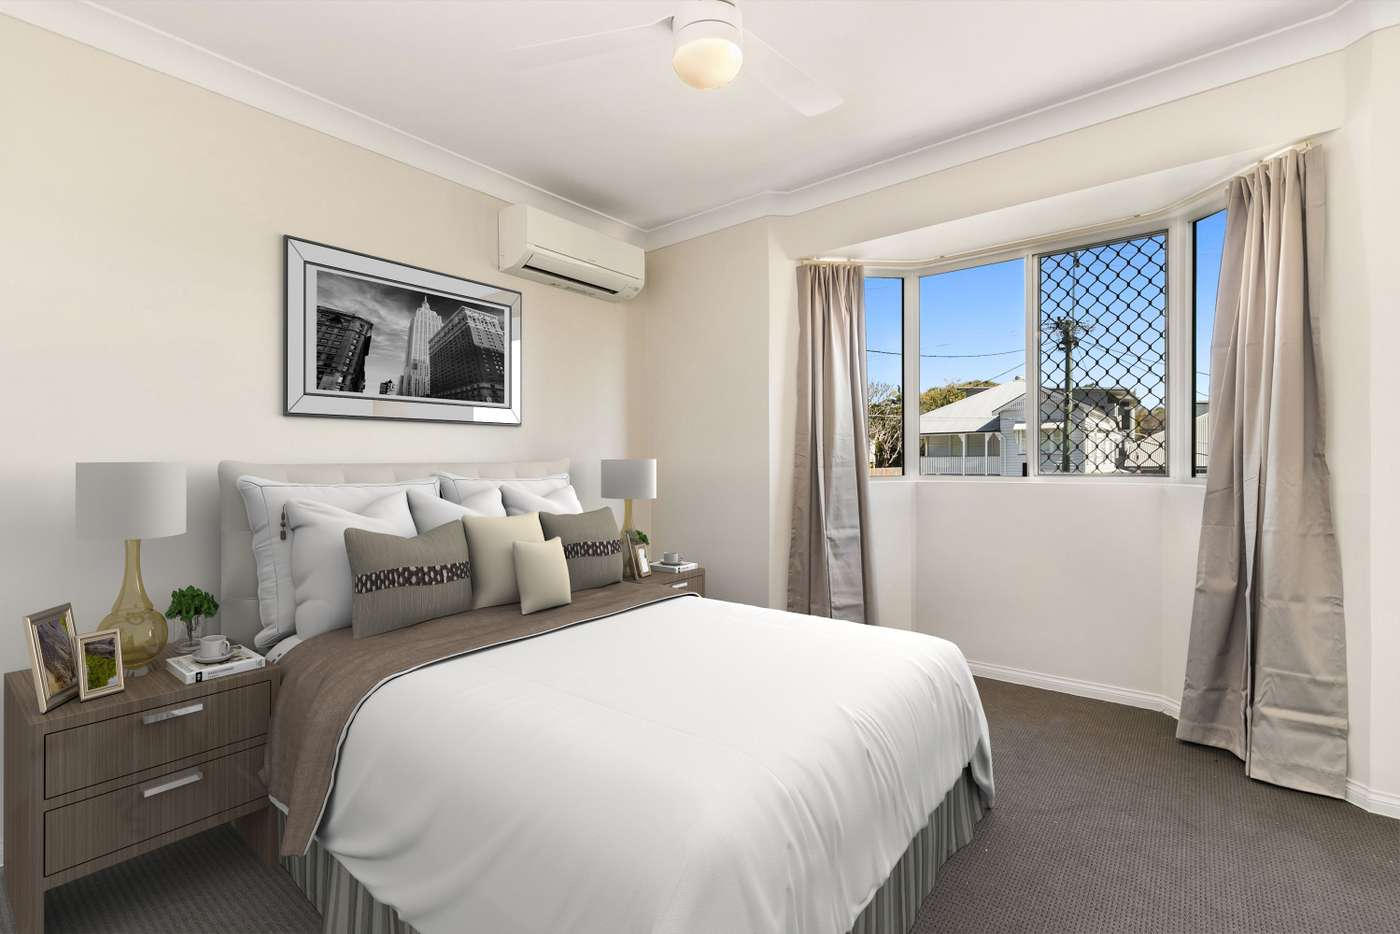 Sixth view of Homely apartment listing, 3/9 North Street, Newmarket QLD 4051